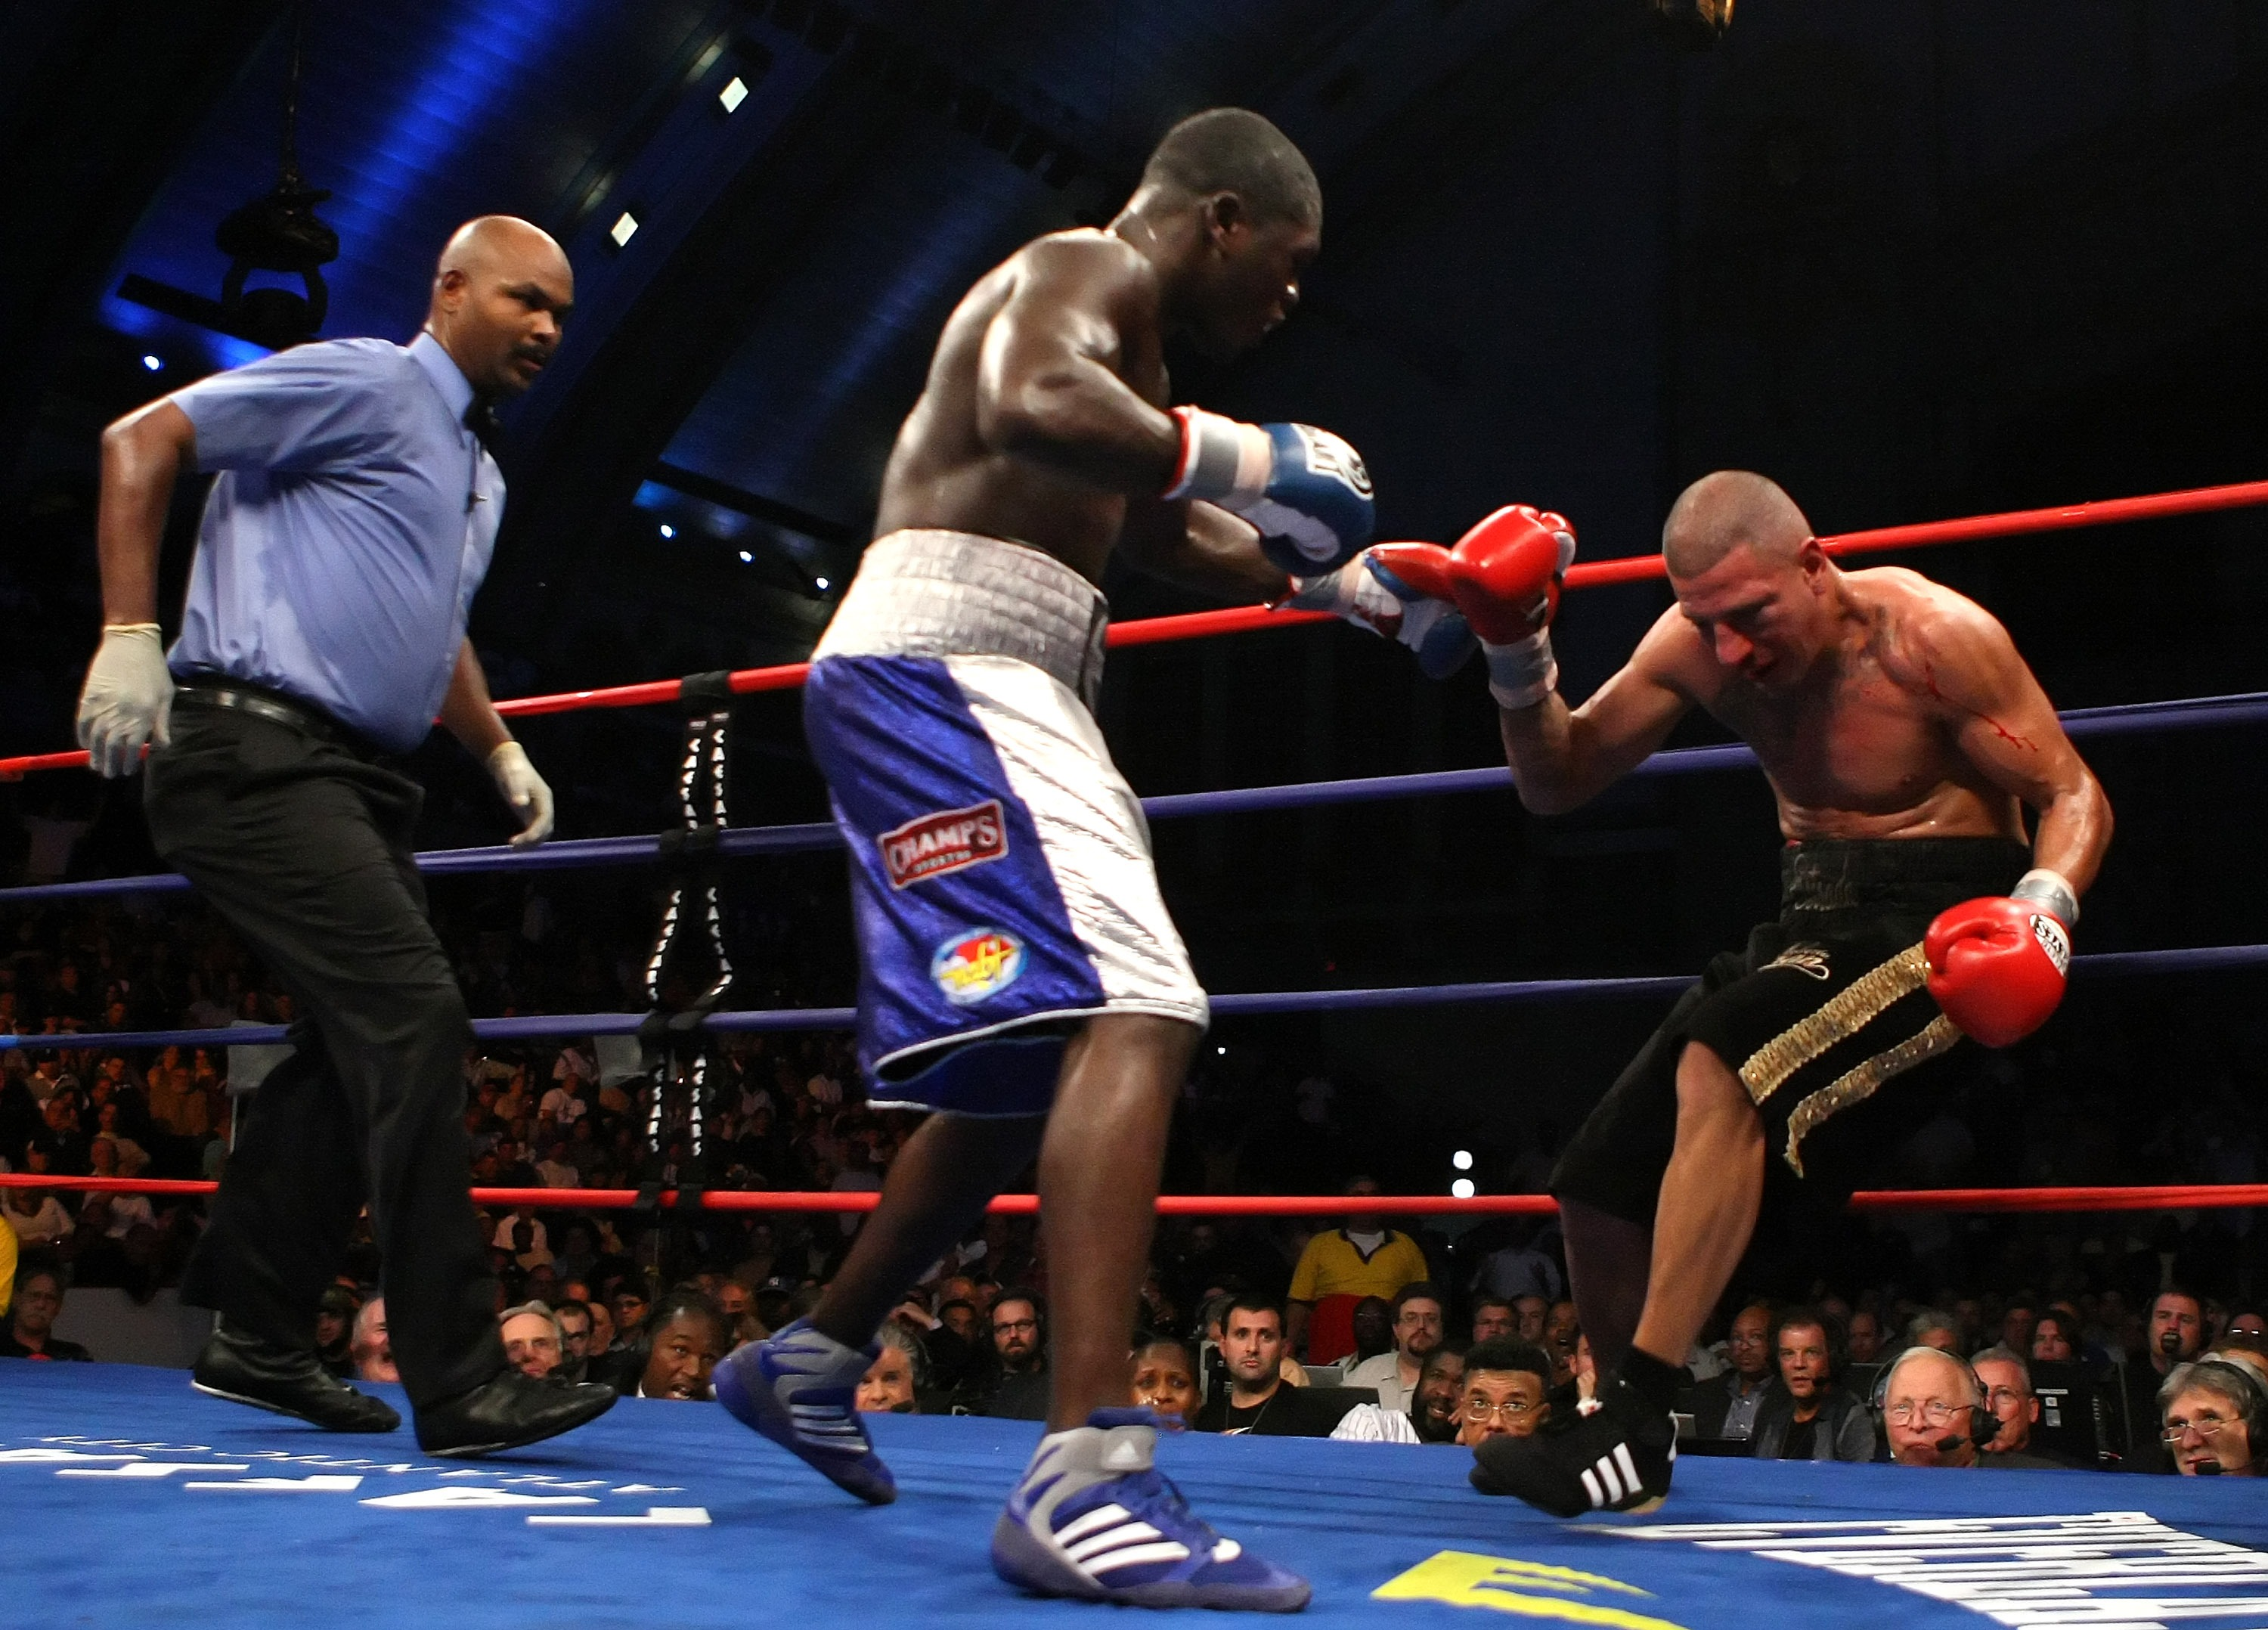 ATLANTIC CITY, NJ - SEPTEMBER 29:  David Estrada falls against the ropes after receiving a blow from Andre Berto during their NABF Welterweight Championship fight at Boardwalk Hall on September 29, 2007 in Atlantic City, New Jersey.  Andre Berto won by TK